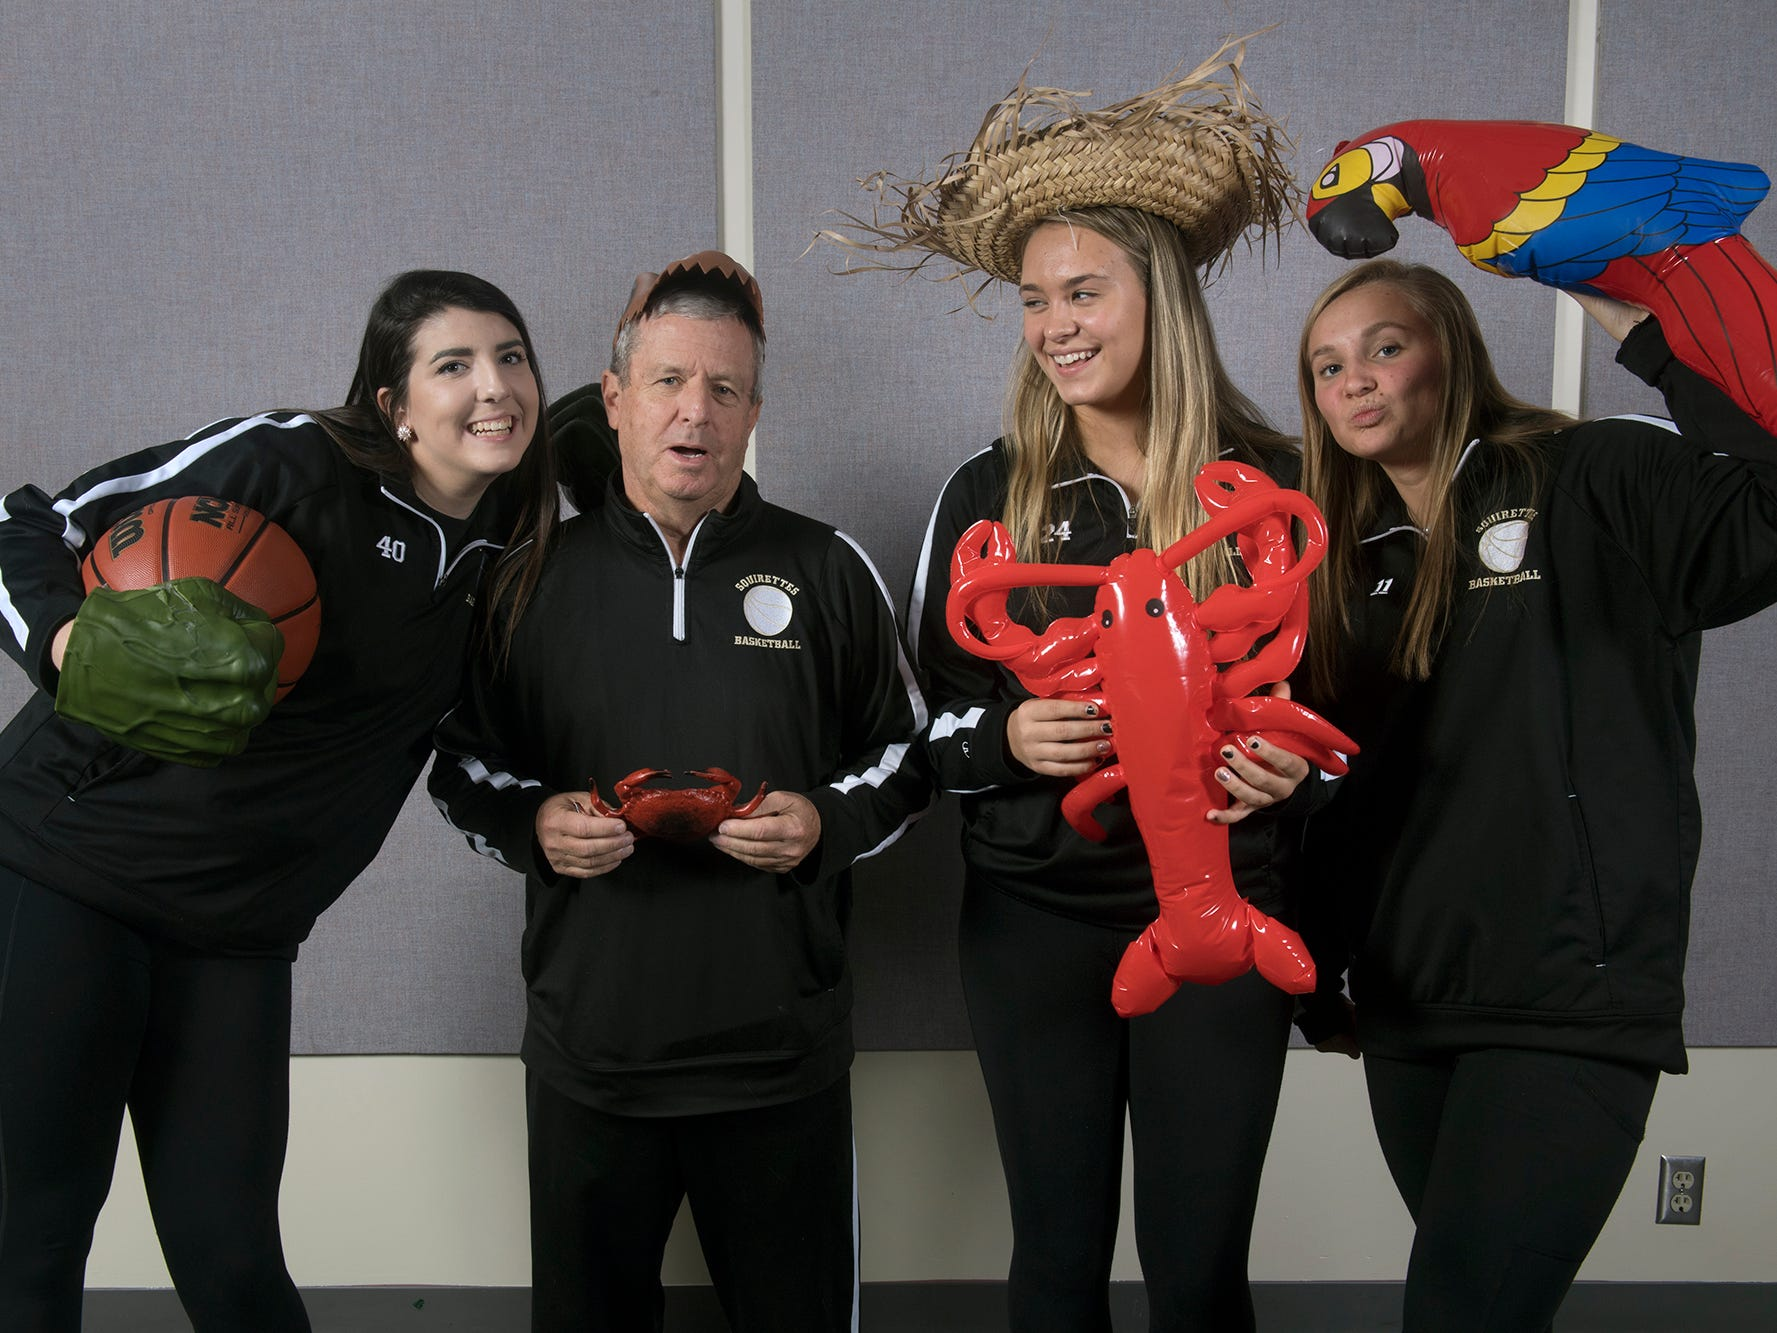 From the left, Bradi Zumbrum, Coach Gerry Eckenrode, Colleen Anderson, and Riley Vingsen, with the Delone Catholic girls basketball team, pose during the 2018-19 GameTimePa YAIAA Winter Media Day Sunday November 11, 2018.